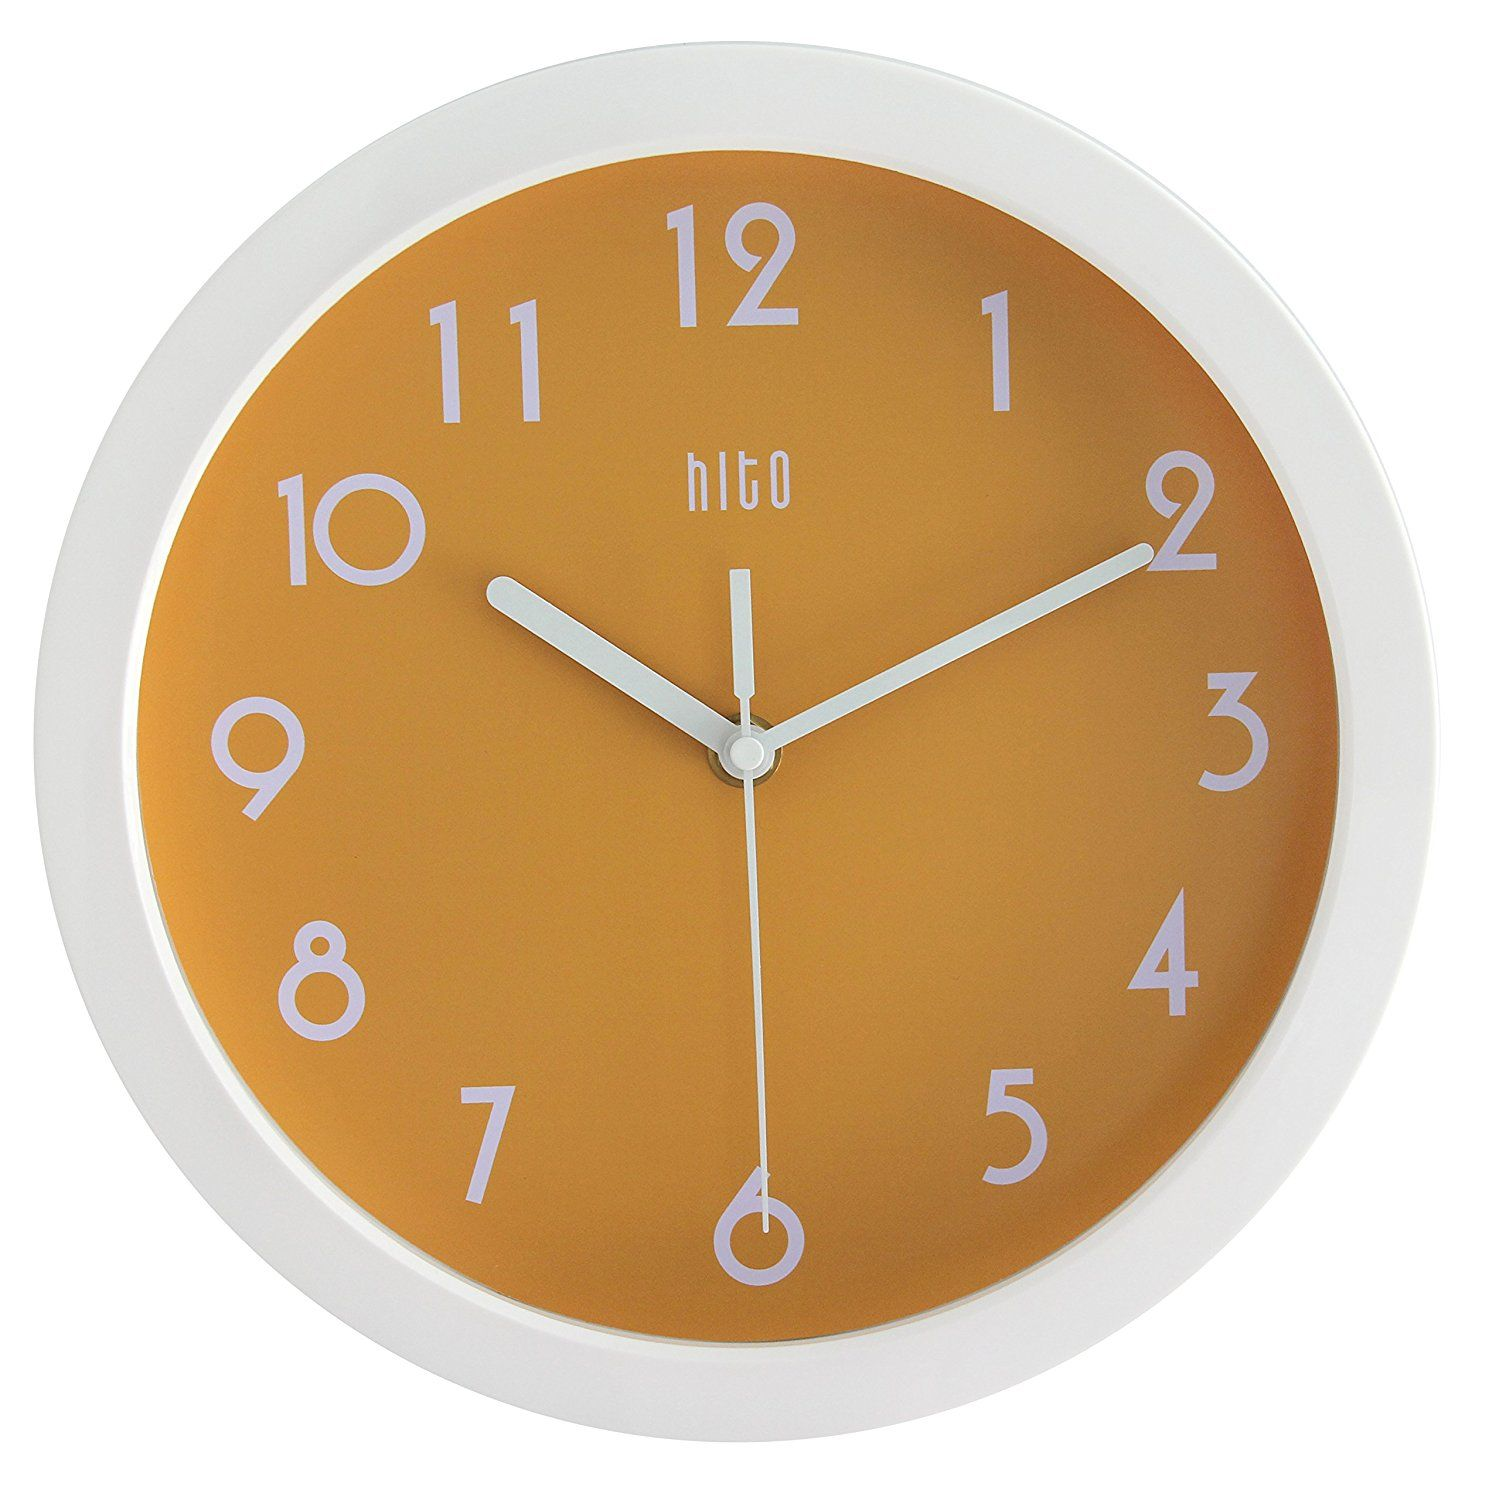 Amazon Com Hito Modern Colorful Silent Non Ticking Wall Clock 10 Inches Apple Green Home Kitchen Clock Wall Clock Kids Wall Clock